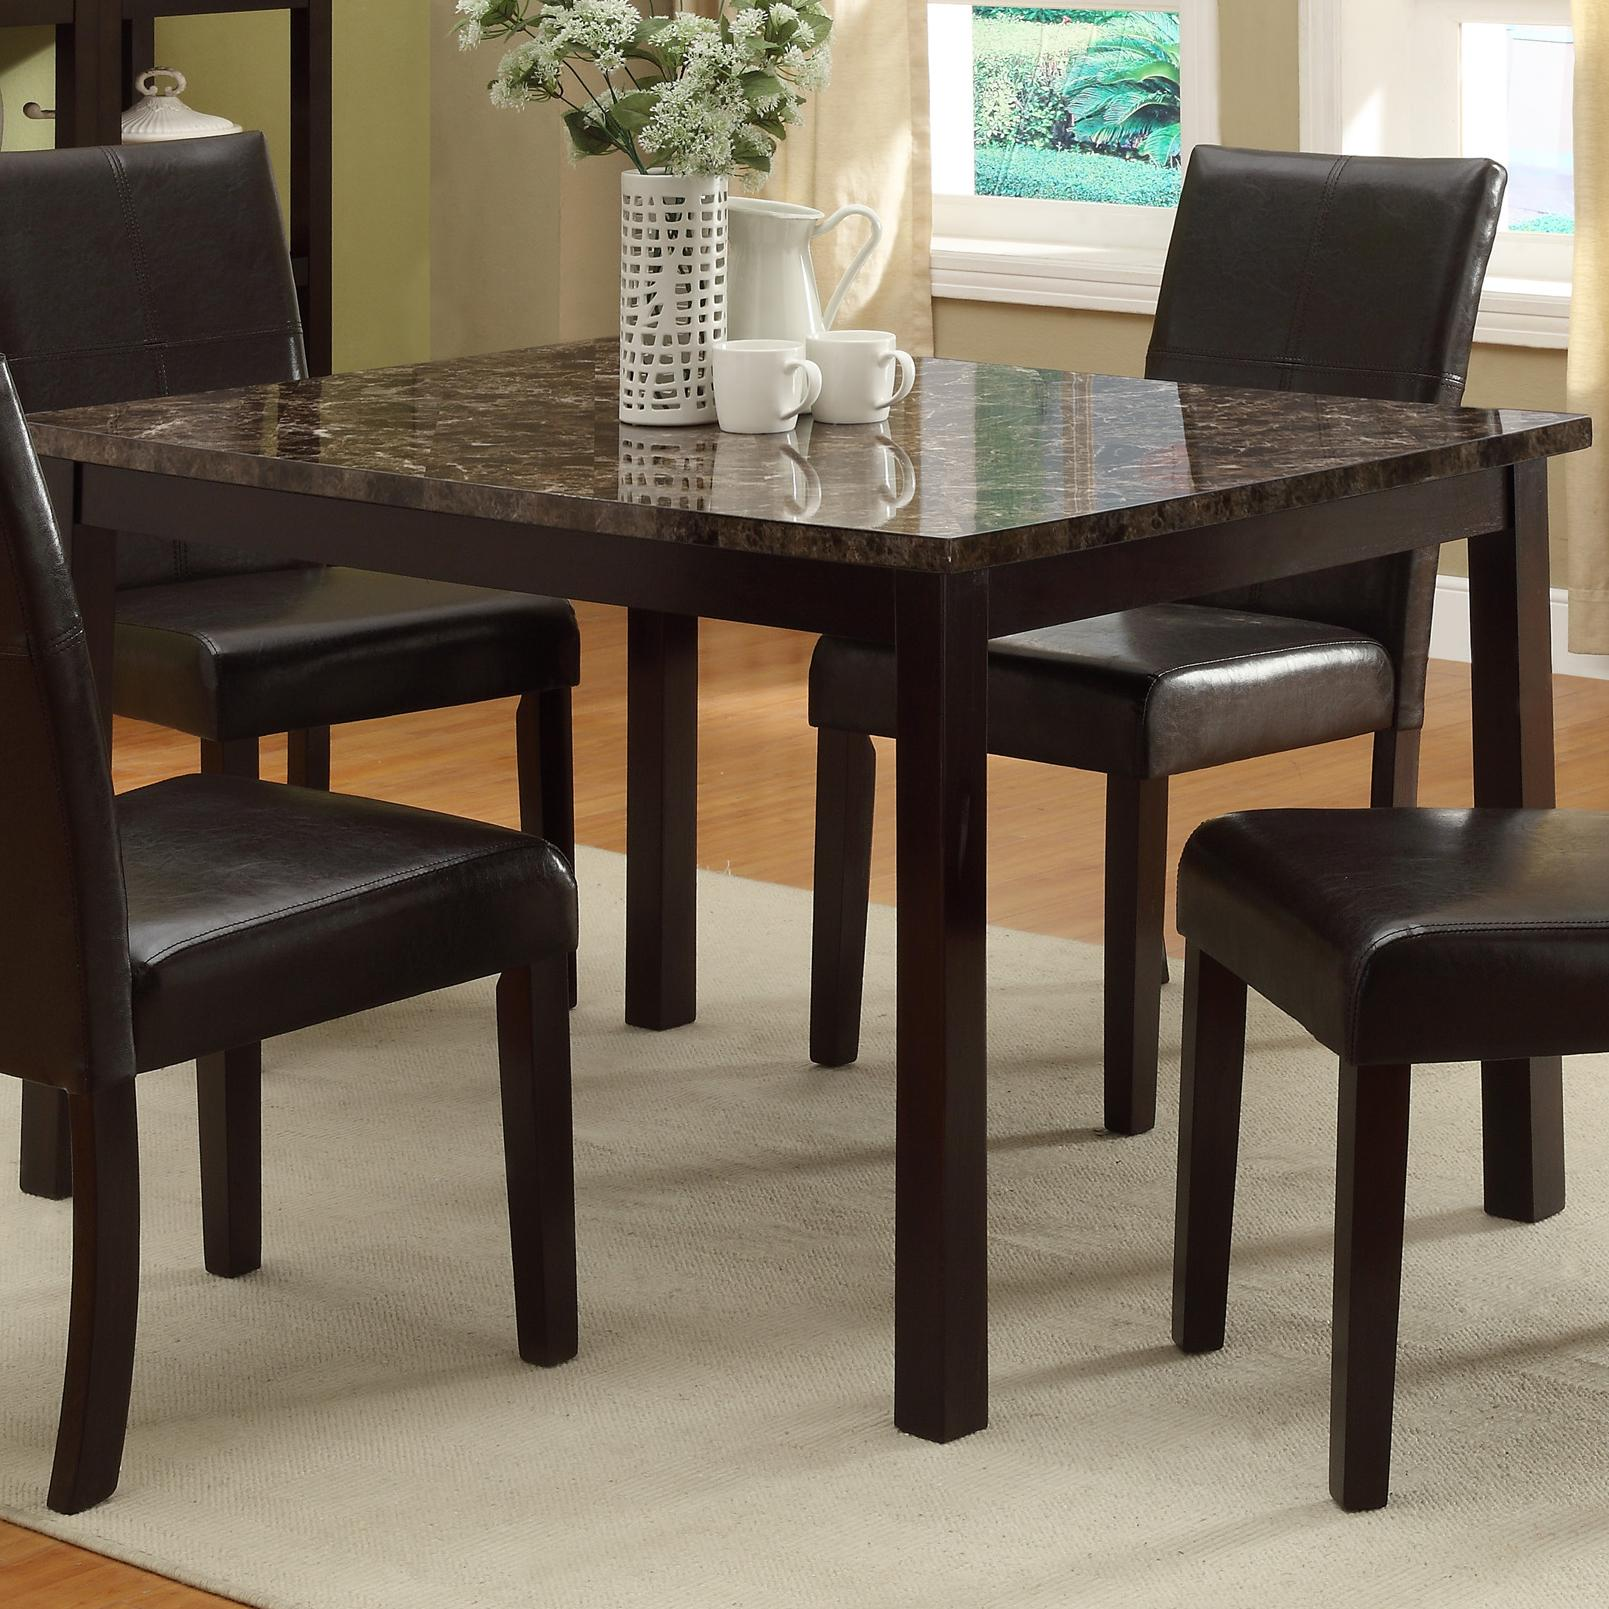 Crown mark pompei 2377t 3648 rectangular dining table with for Rectangle kitchen table with bench